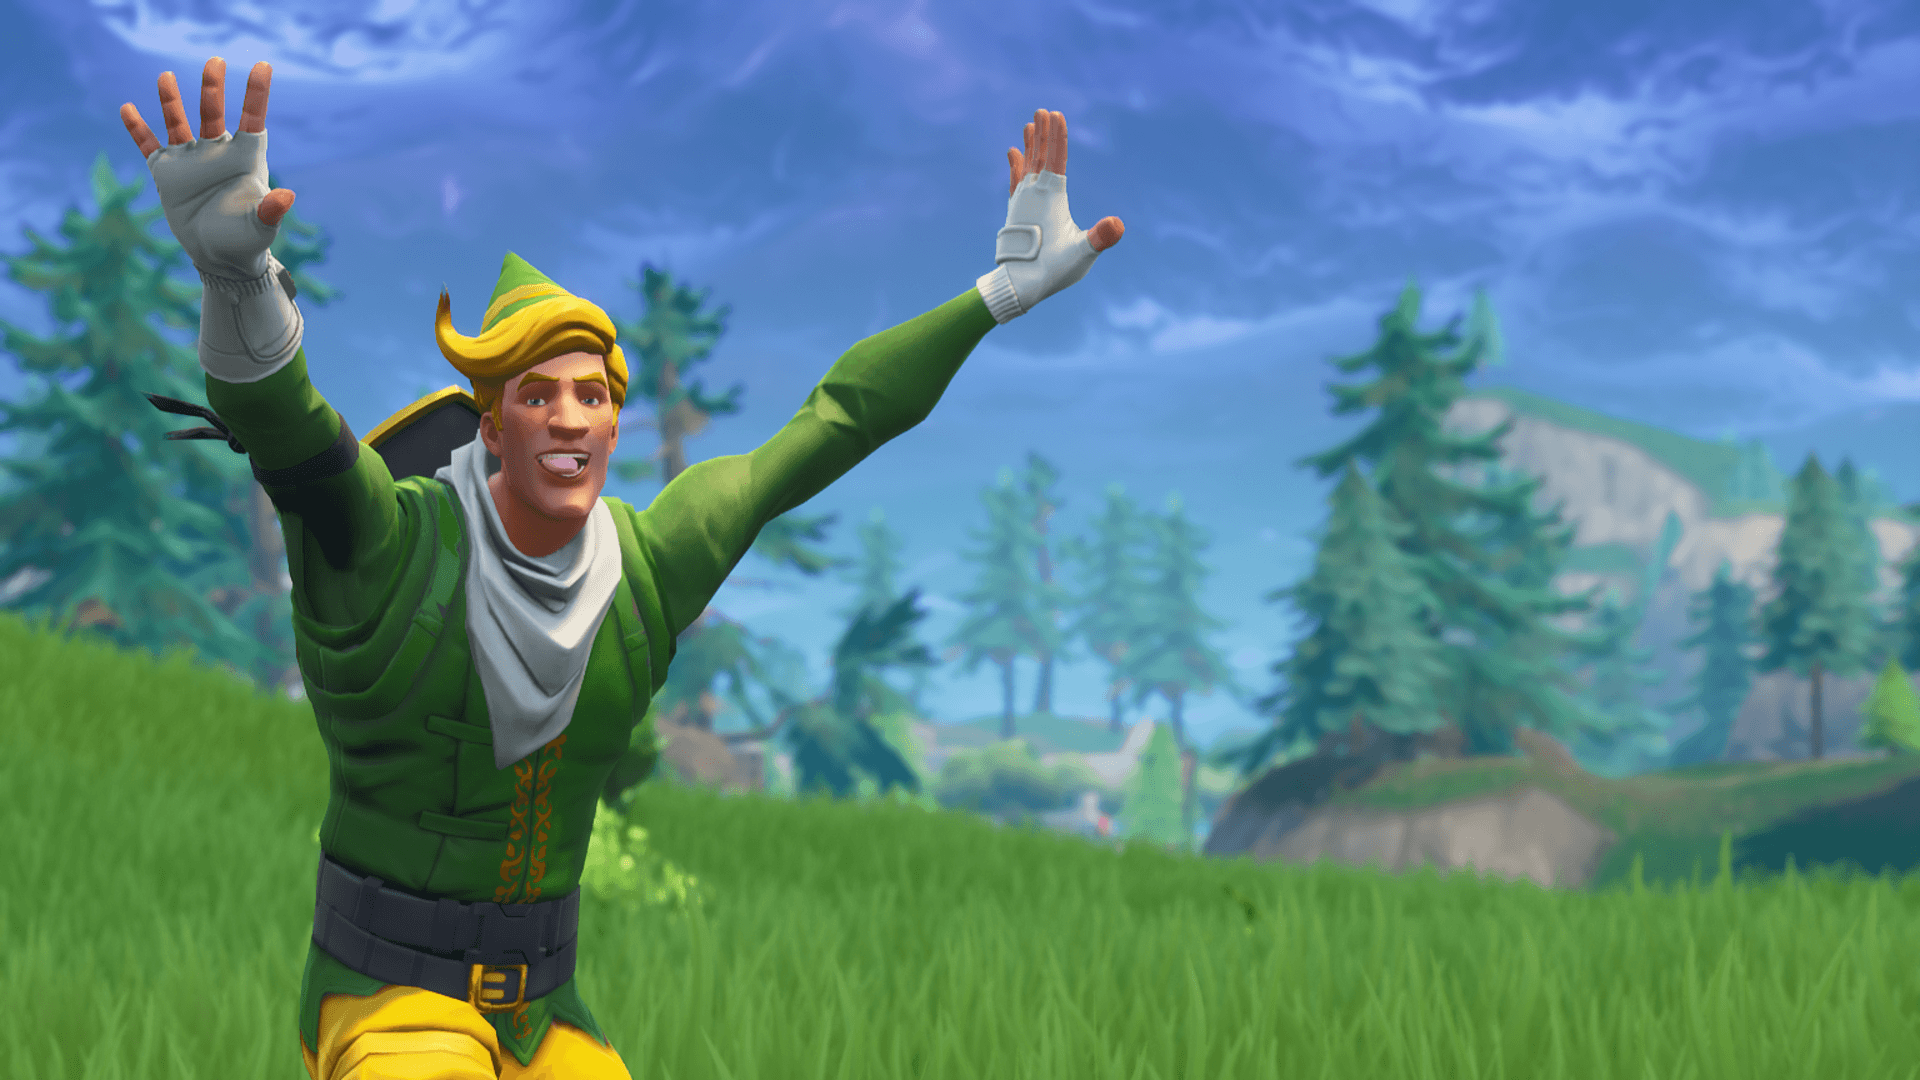 just got a new desktop background fortnitebr - fortnite codename elf skin